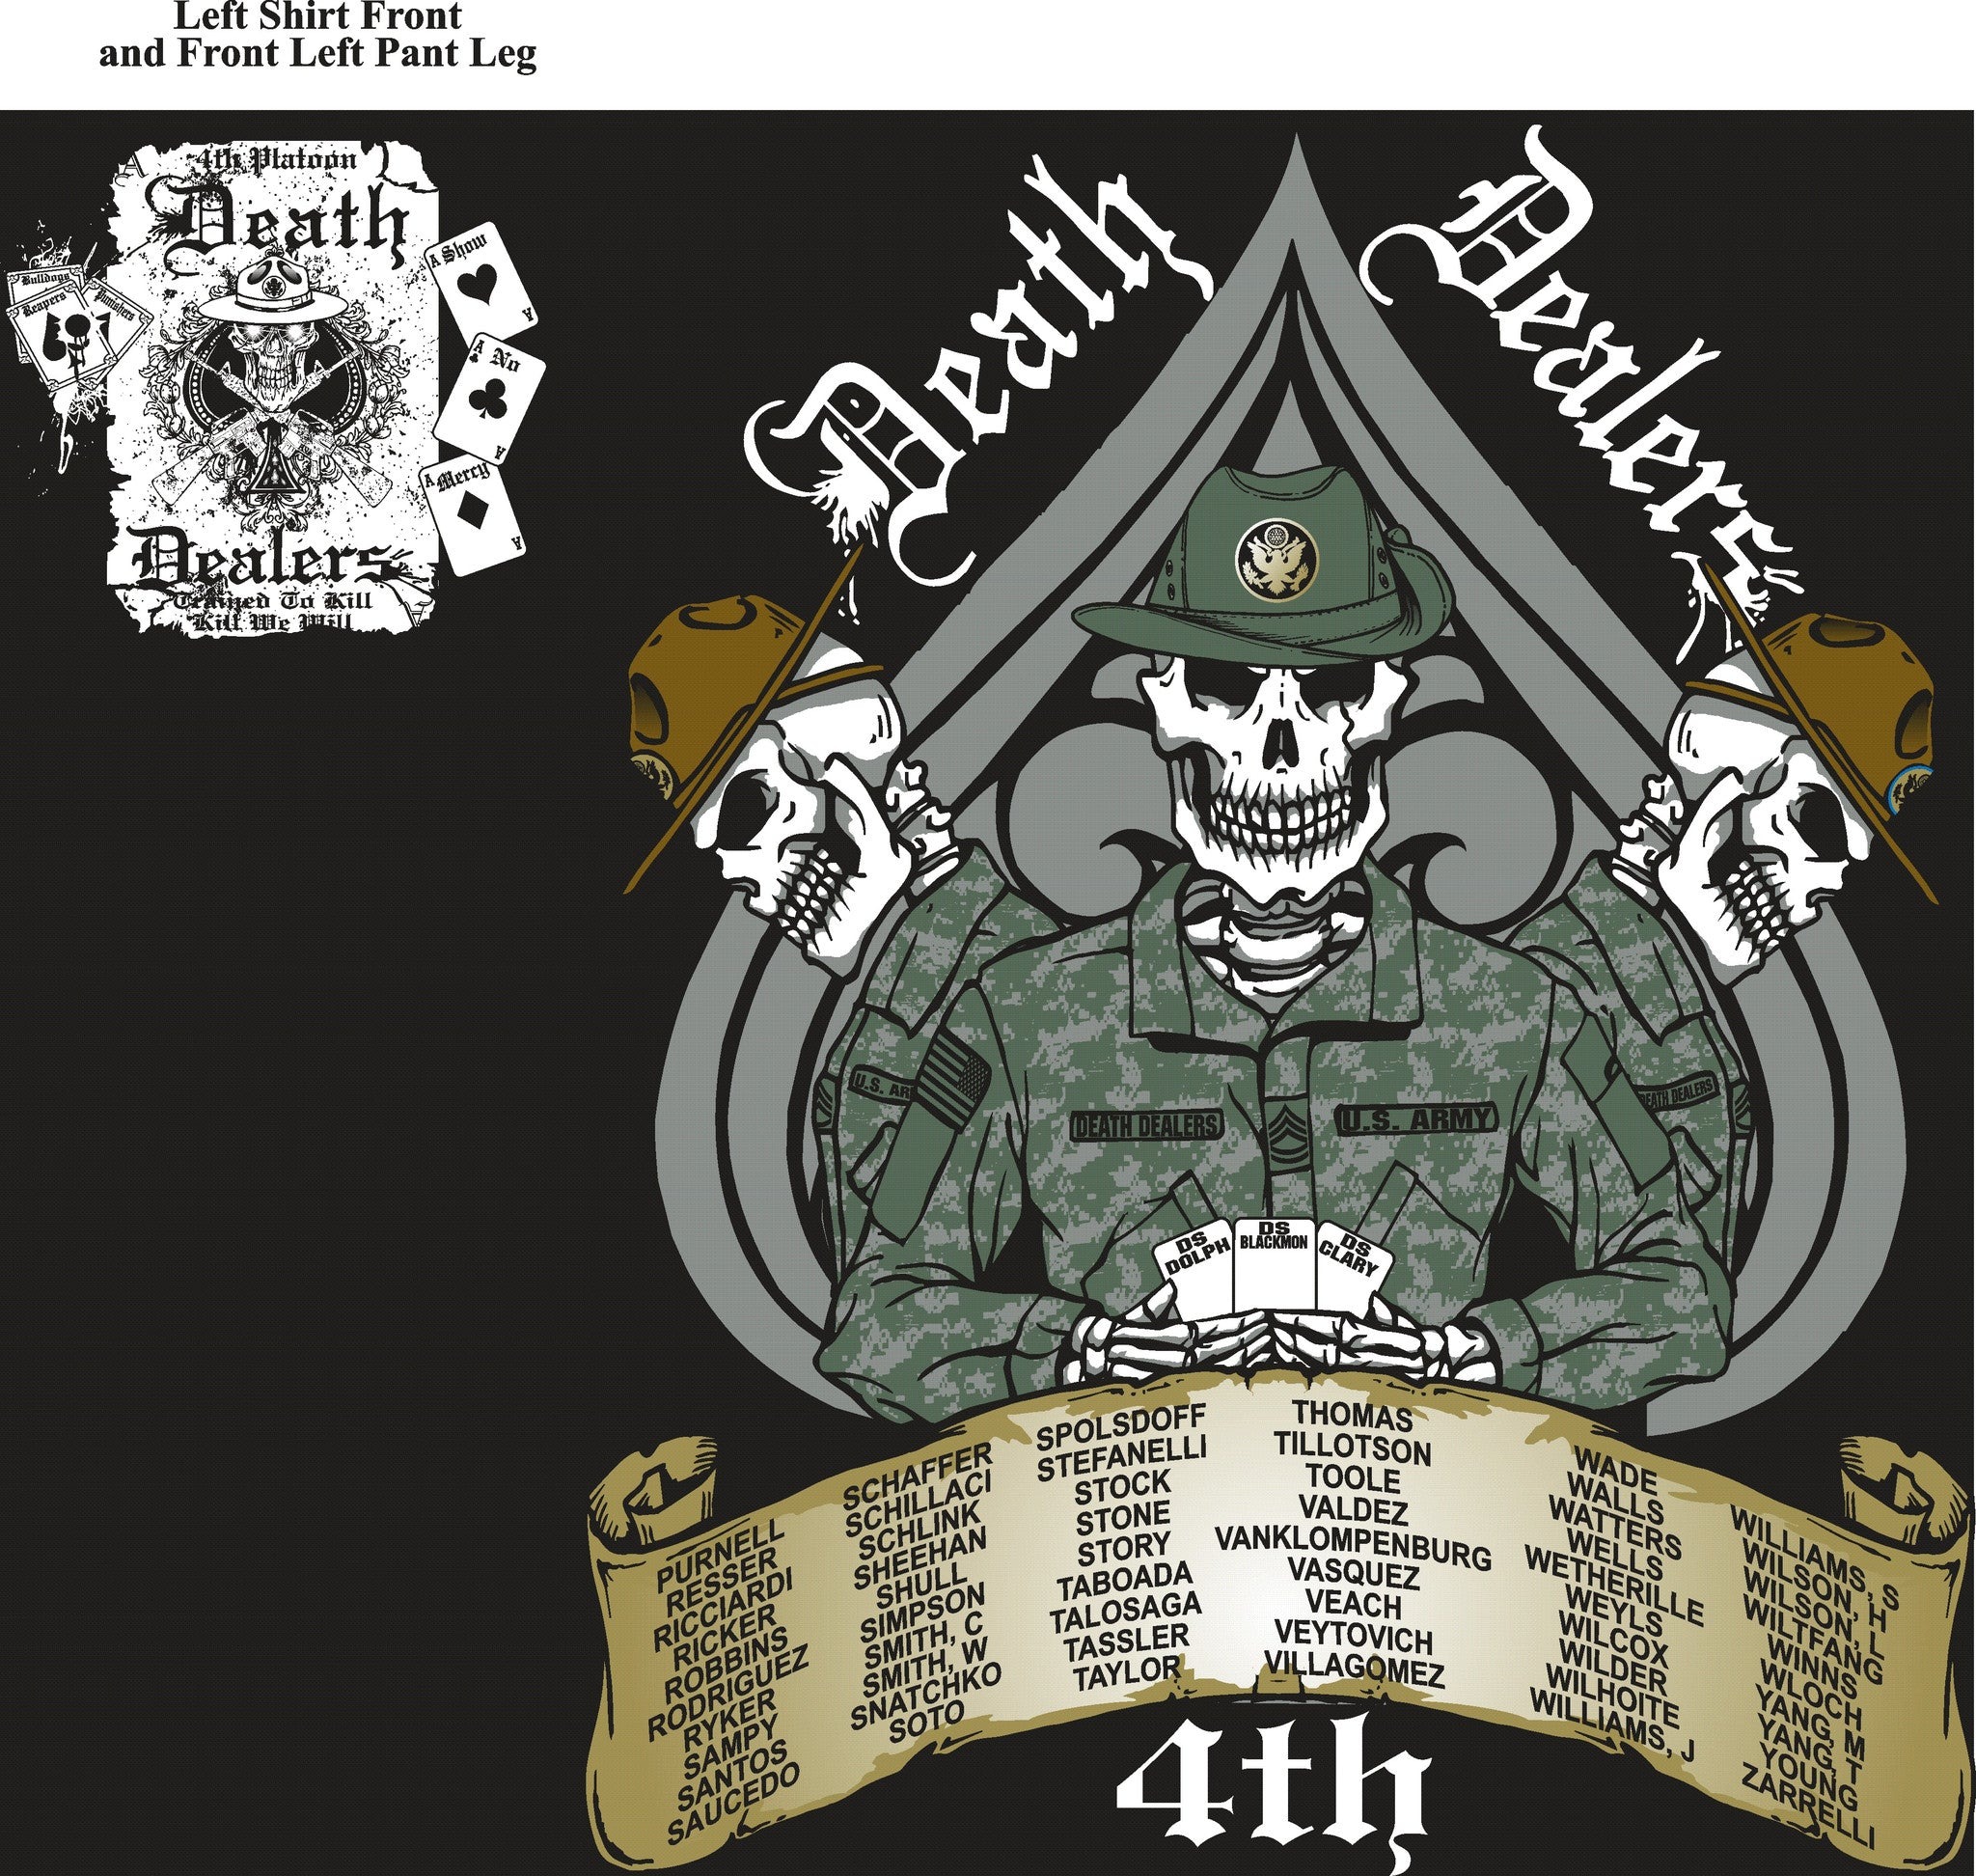 Platoon Shirts FOX 1st 40th DEATH DEALERS AUG 2015